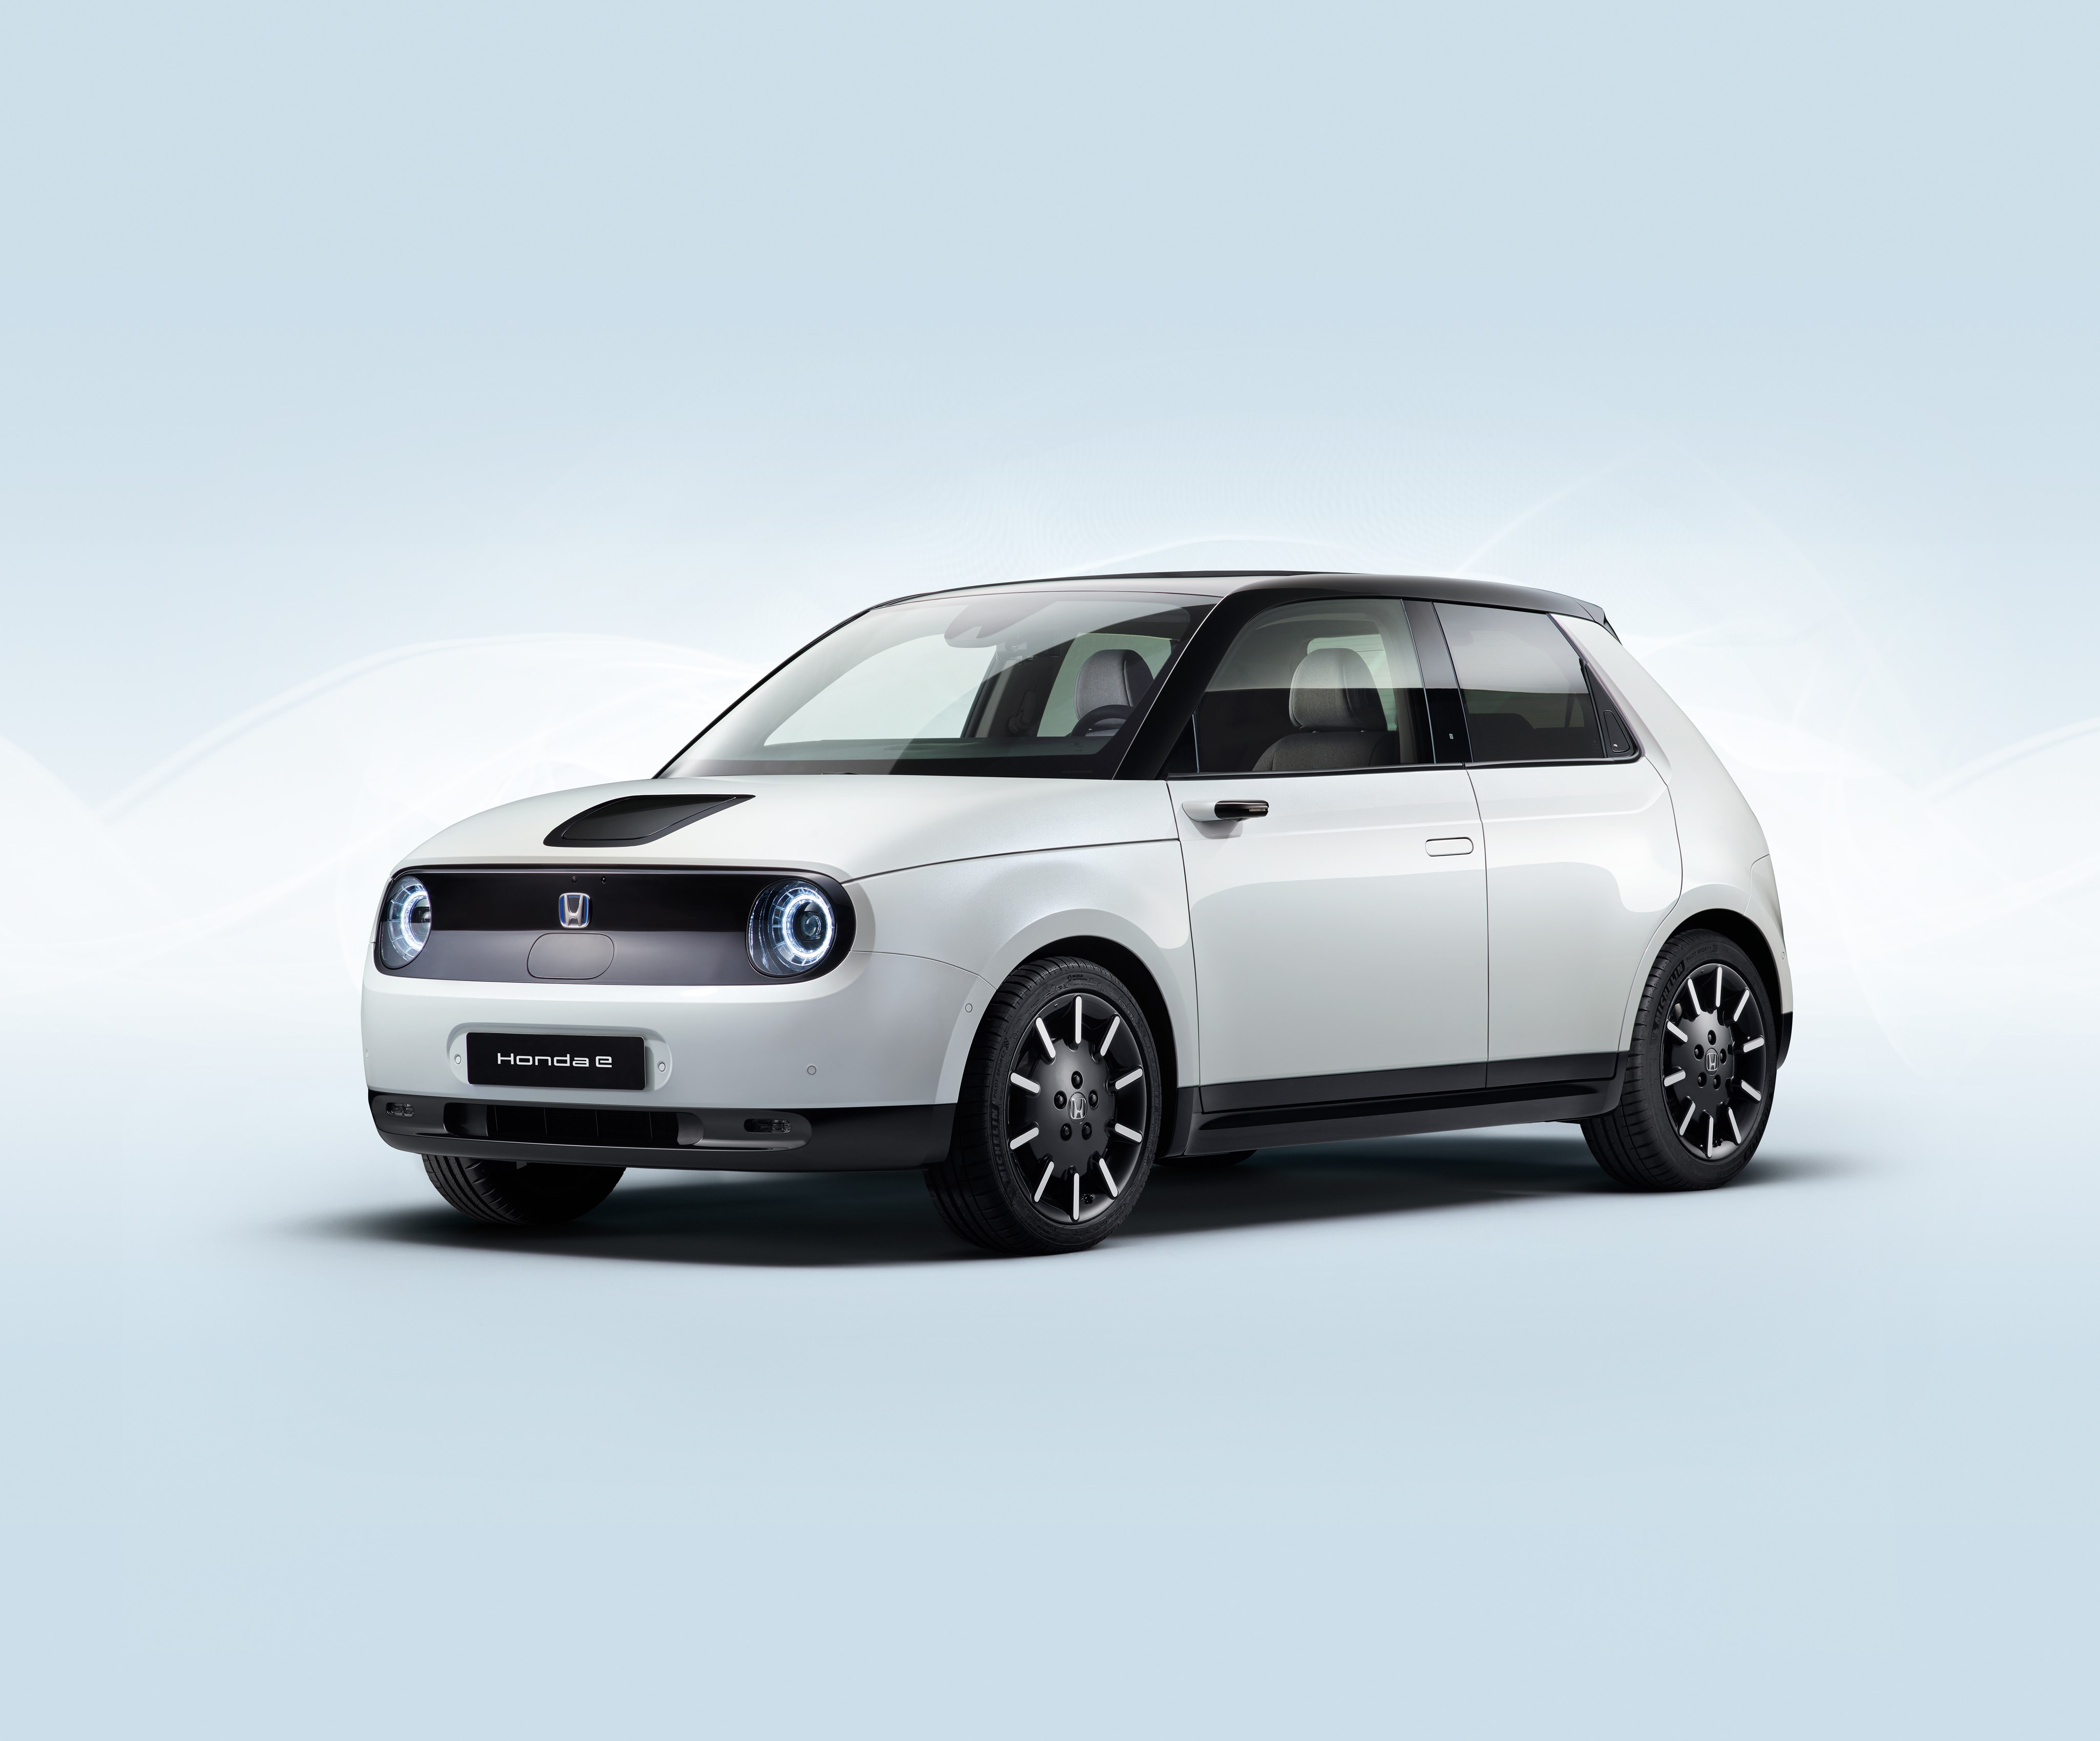 Performance figures released for the super-cute Honda e